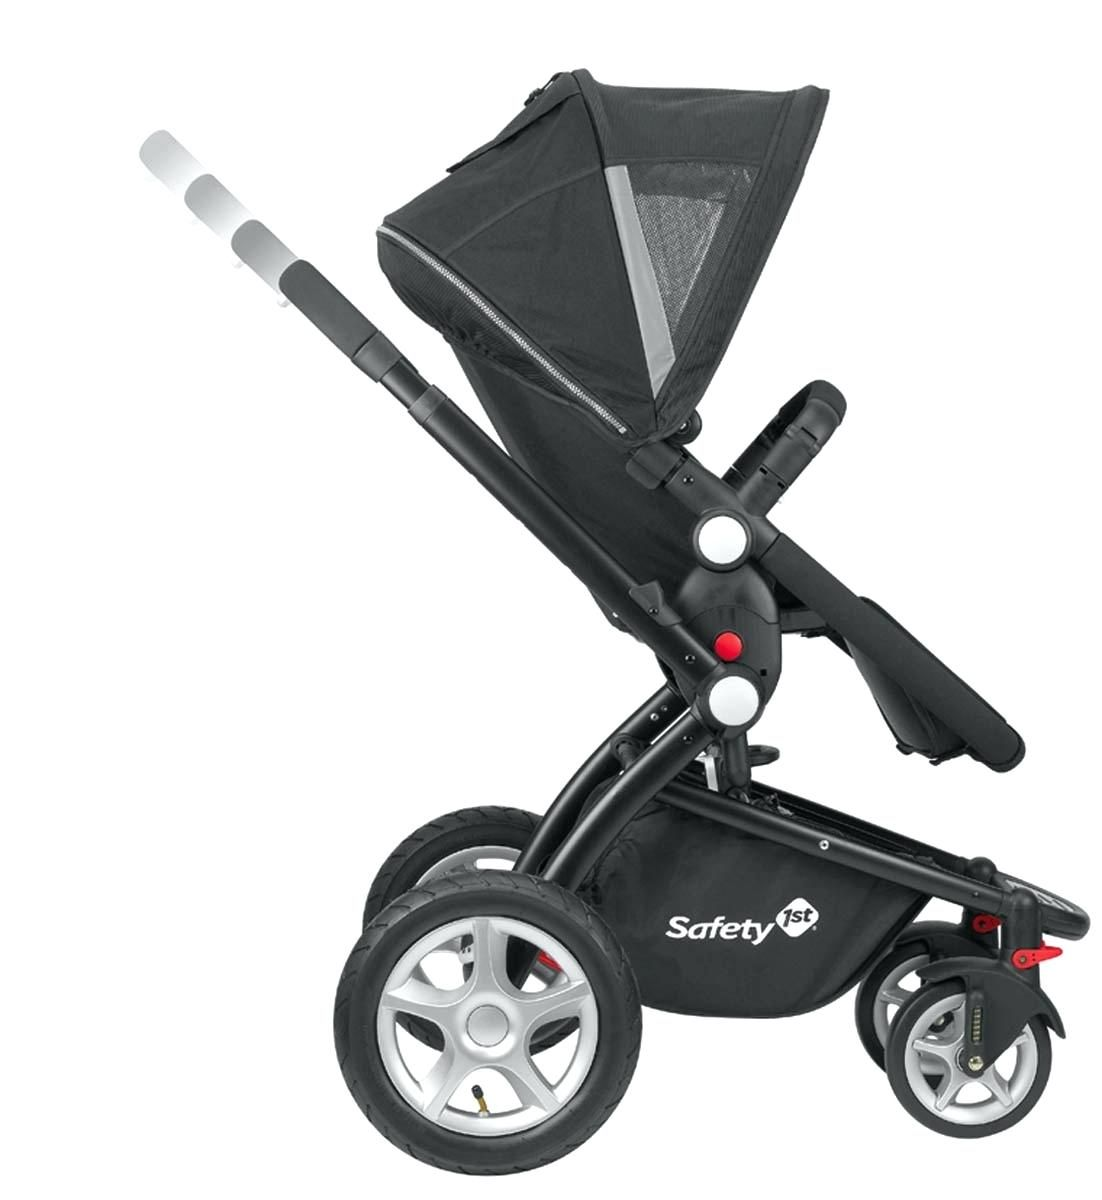 Doppel Kinderwagen Urban Jungle Zwei Kinderwagen Safety Shuttle Kinderwagen Moskitonetz Für